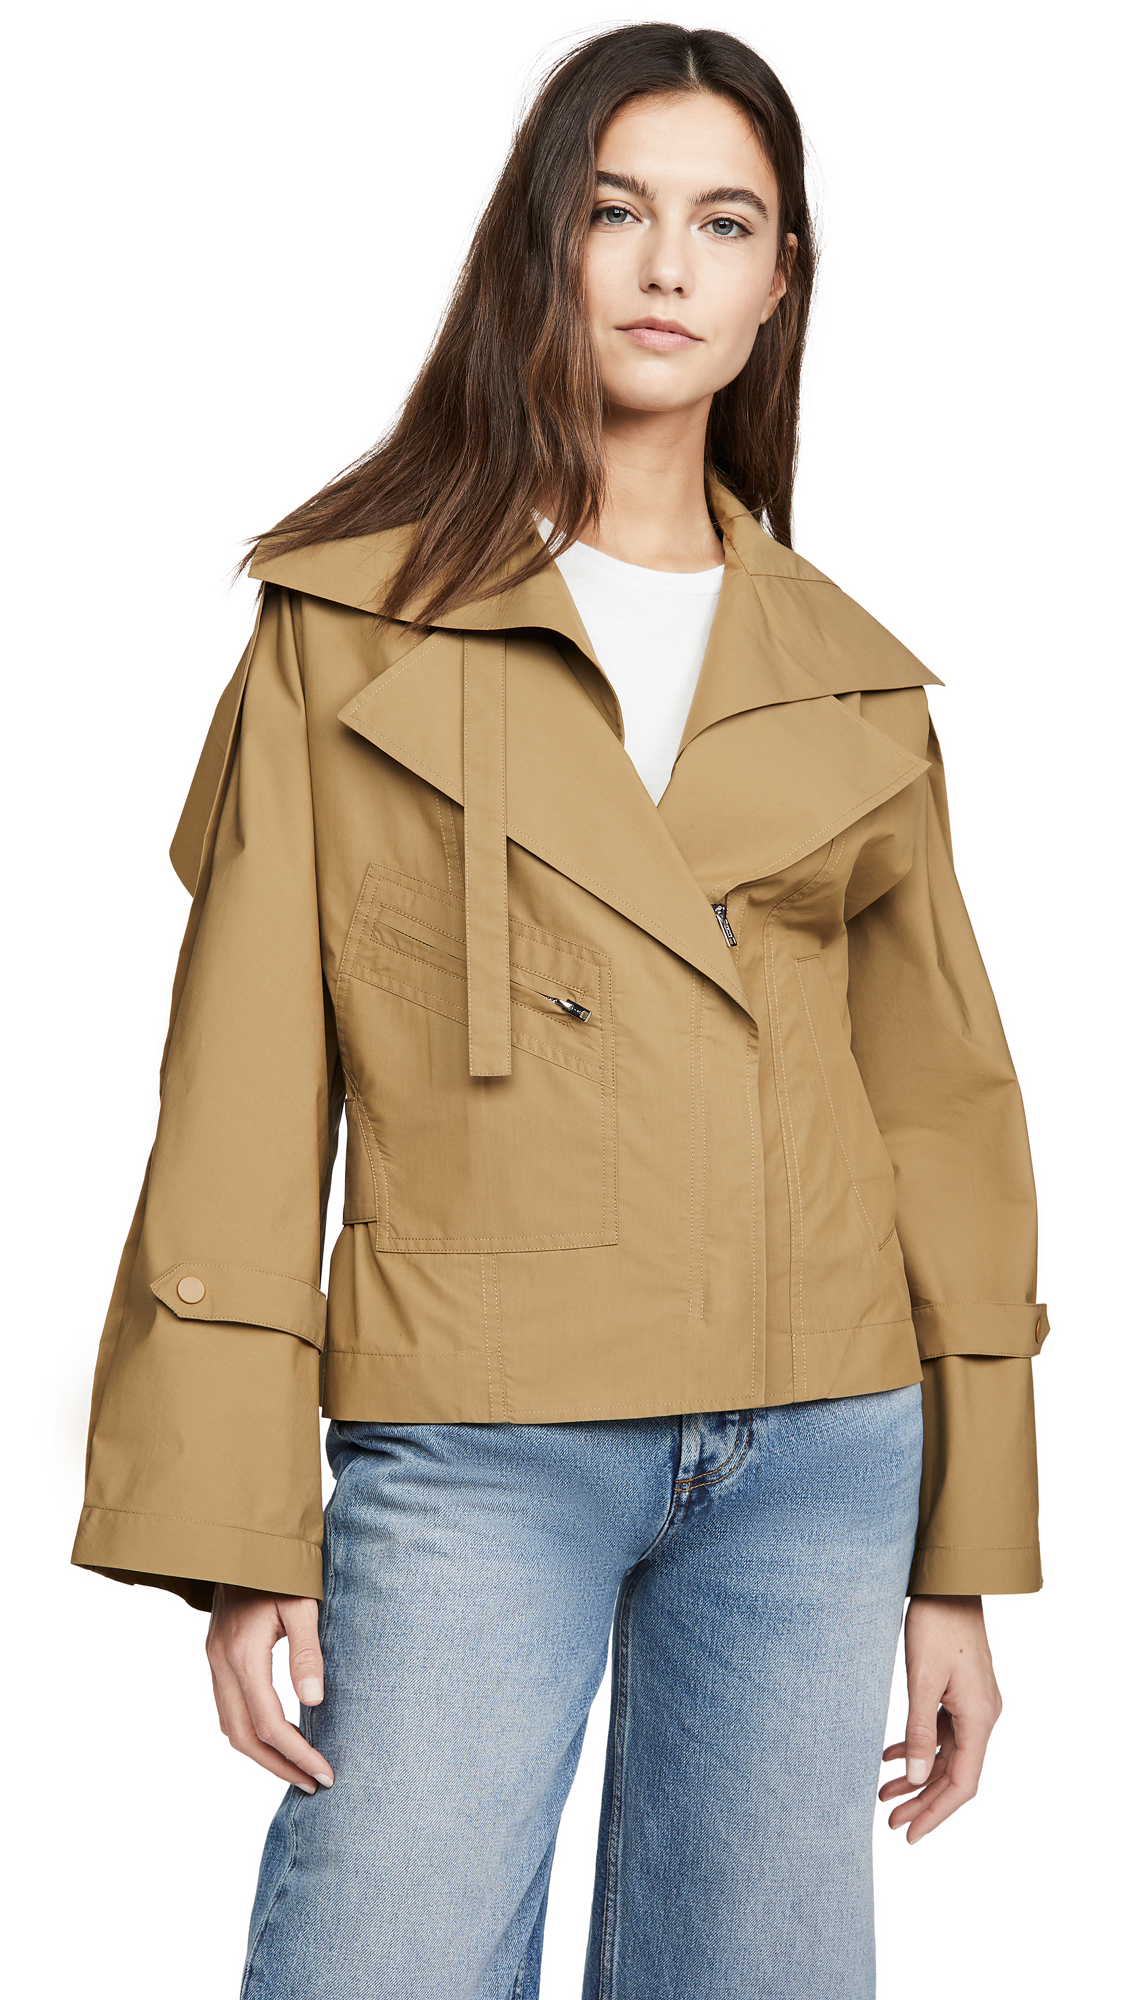 Buy 3.1 Phillip Lim Detachable Collar Jacket online beautiful 3.1 Phillip Lim Clothing, Jackets